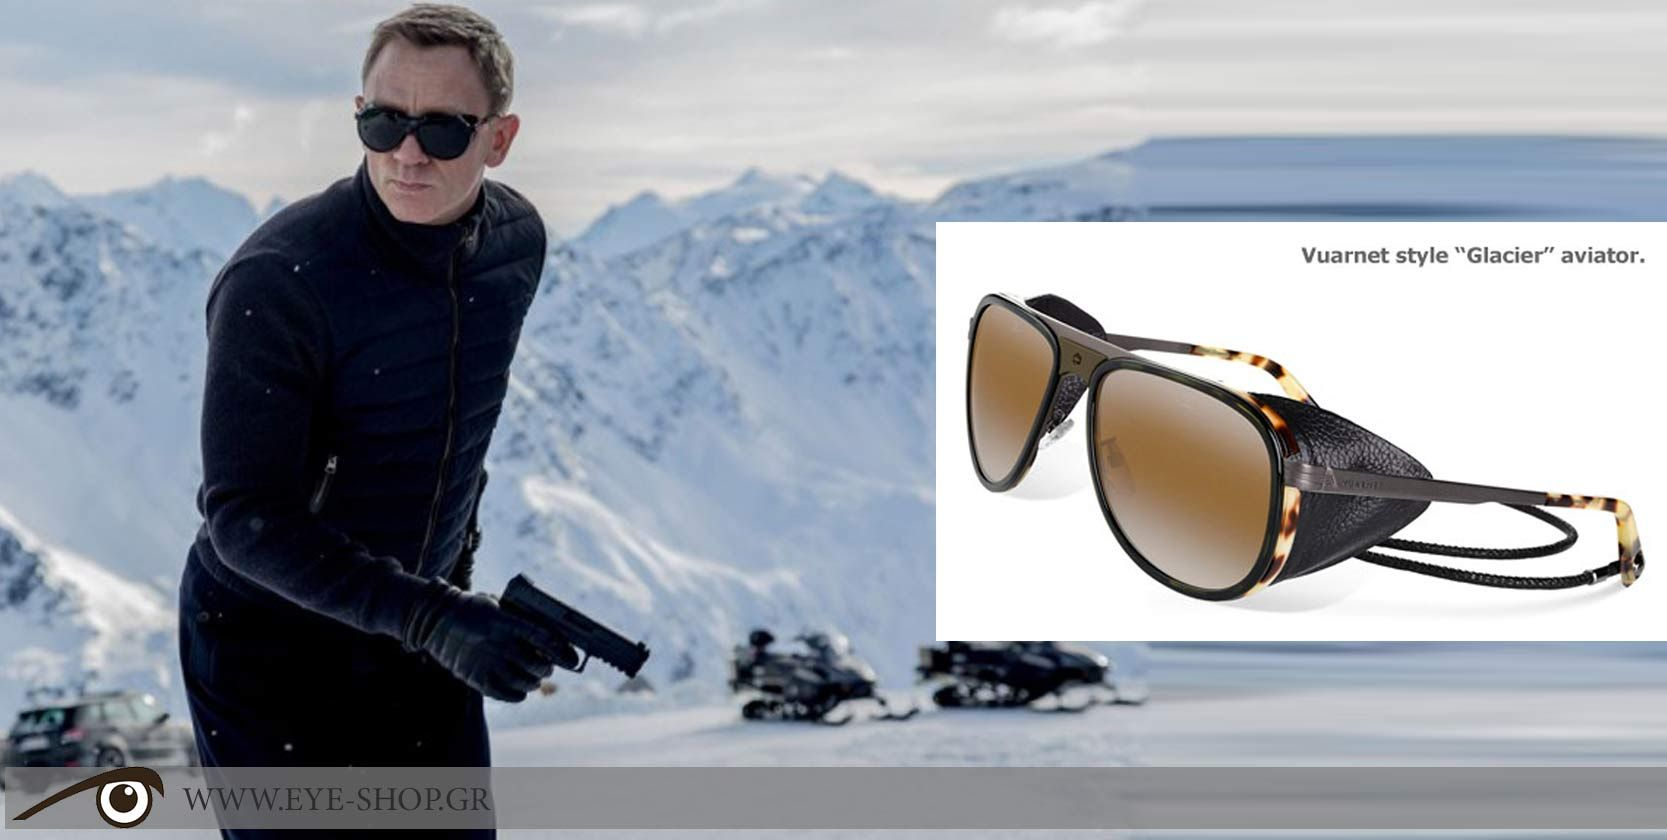 Image result for Bond Spectre Sunglasses: Vuarnet Aviator Sunglasses in spectre